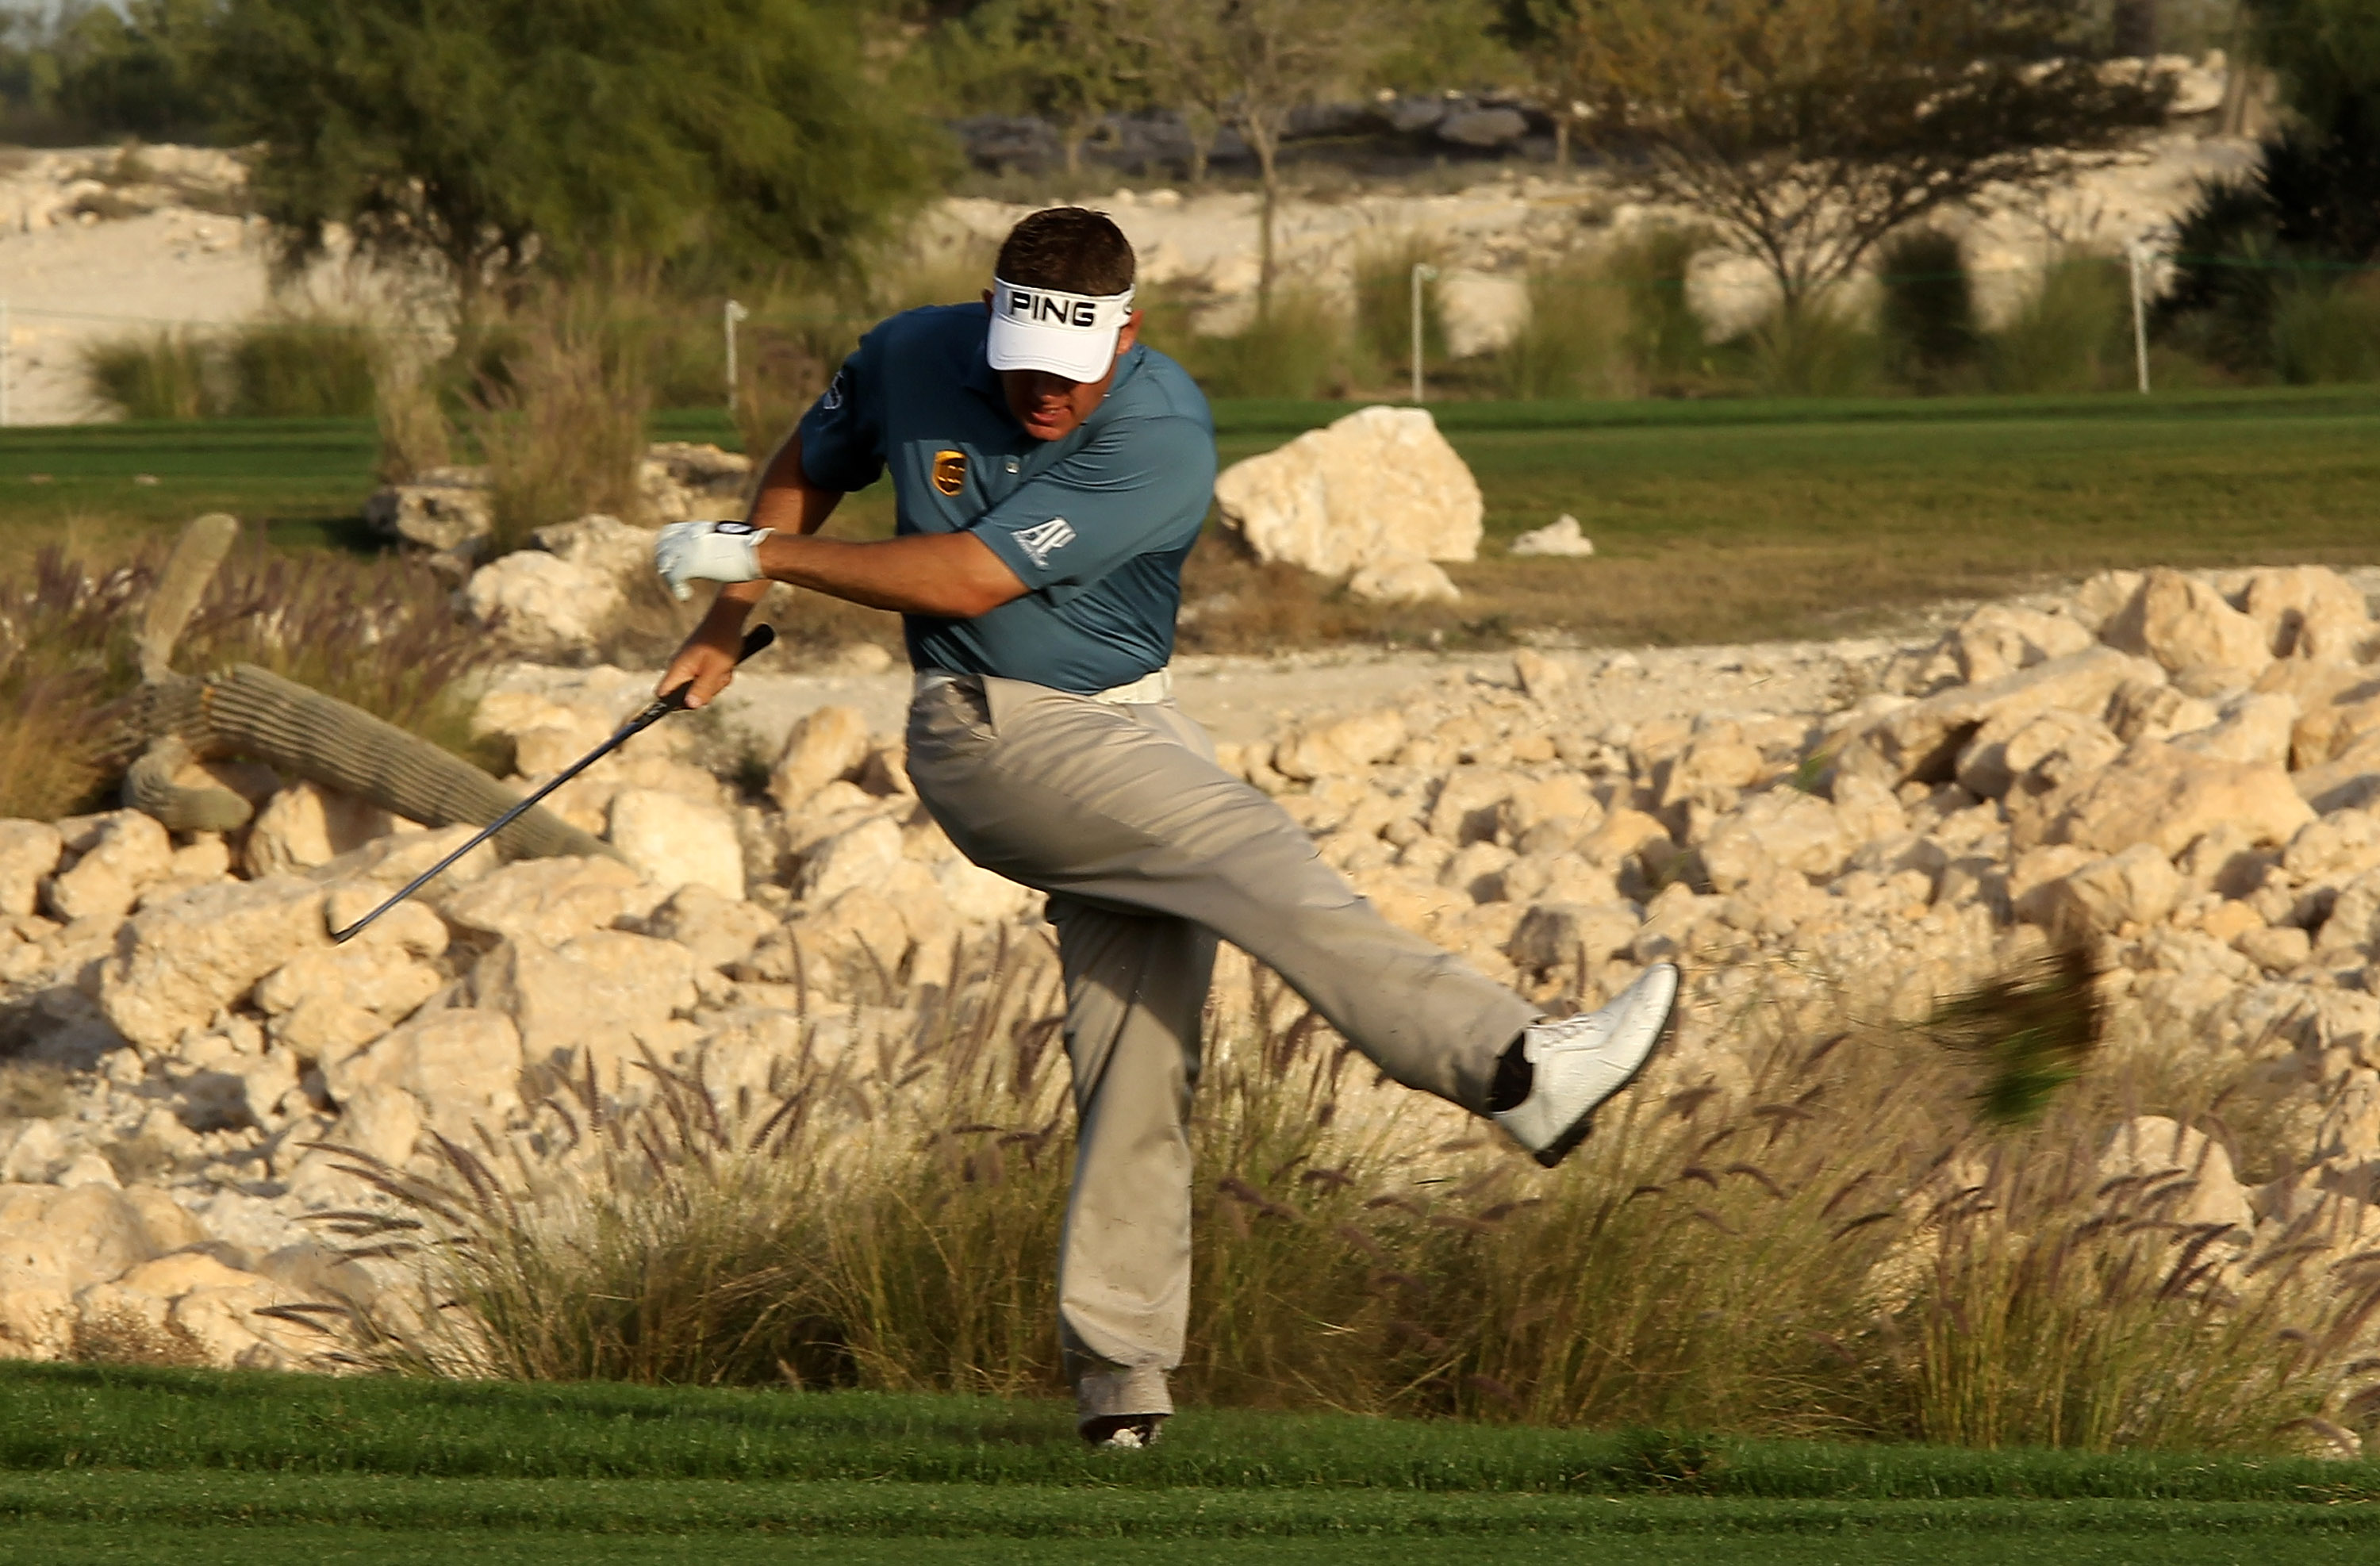 DOHA, QATAR - JANUARY 30:  Lee Westwood of England shows his frustration by kicking up a clump of grass after his second shot on the 18th hole during the third round of the Commercialbank Qatar Masters at Doha Golf Club on January 30, 2010 in Doha, Qatar.